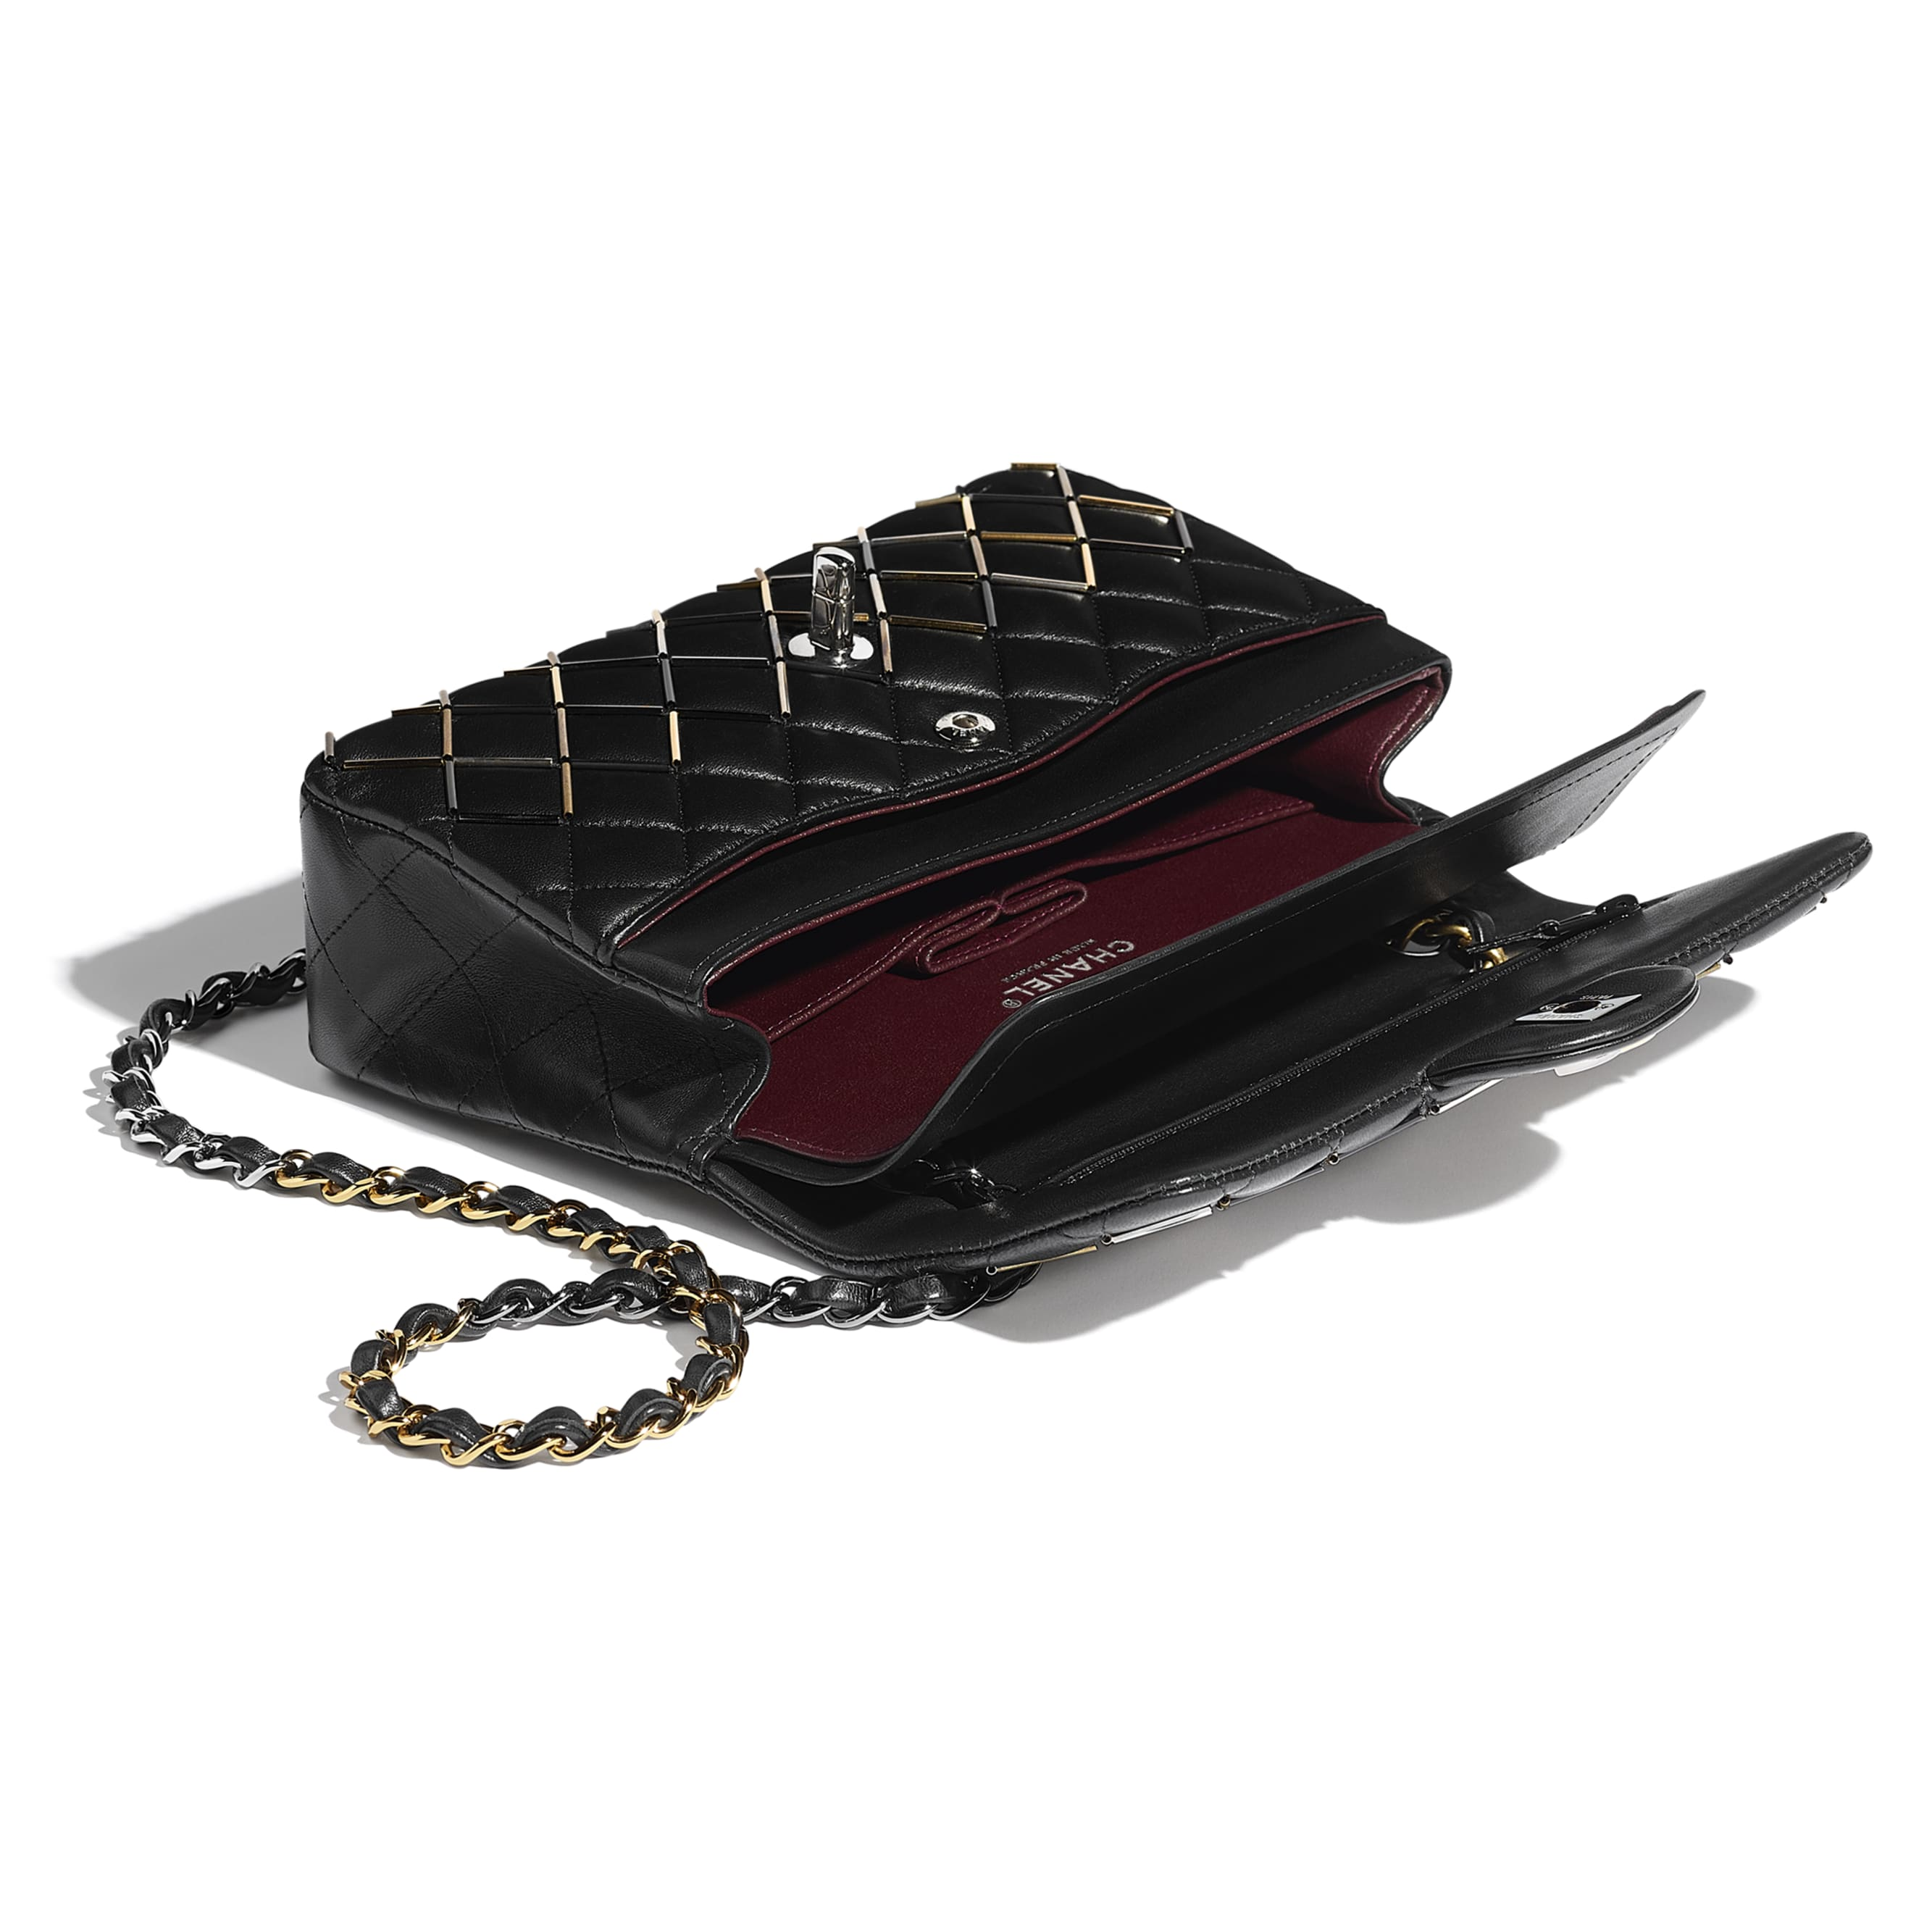 Classic Handbag - Black - Lambskin, Gold-Tone, Silver-Tone, Black & Ruthenium-Finish Metal  - CHANEL - Other view - see standard sized version